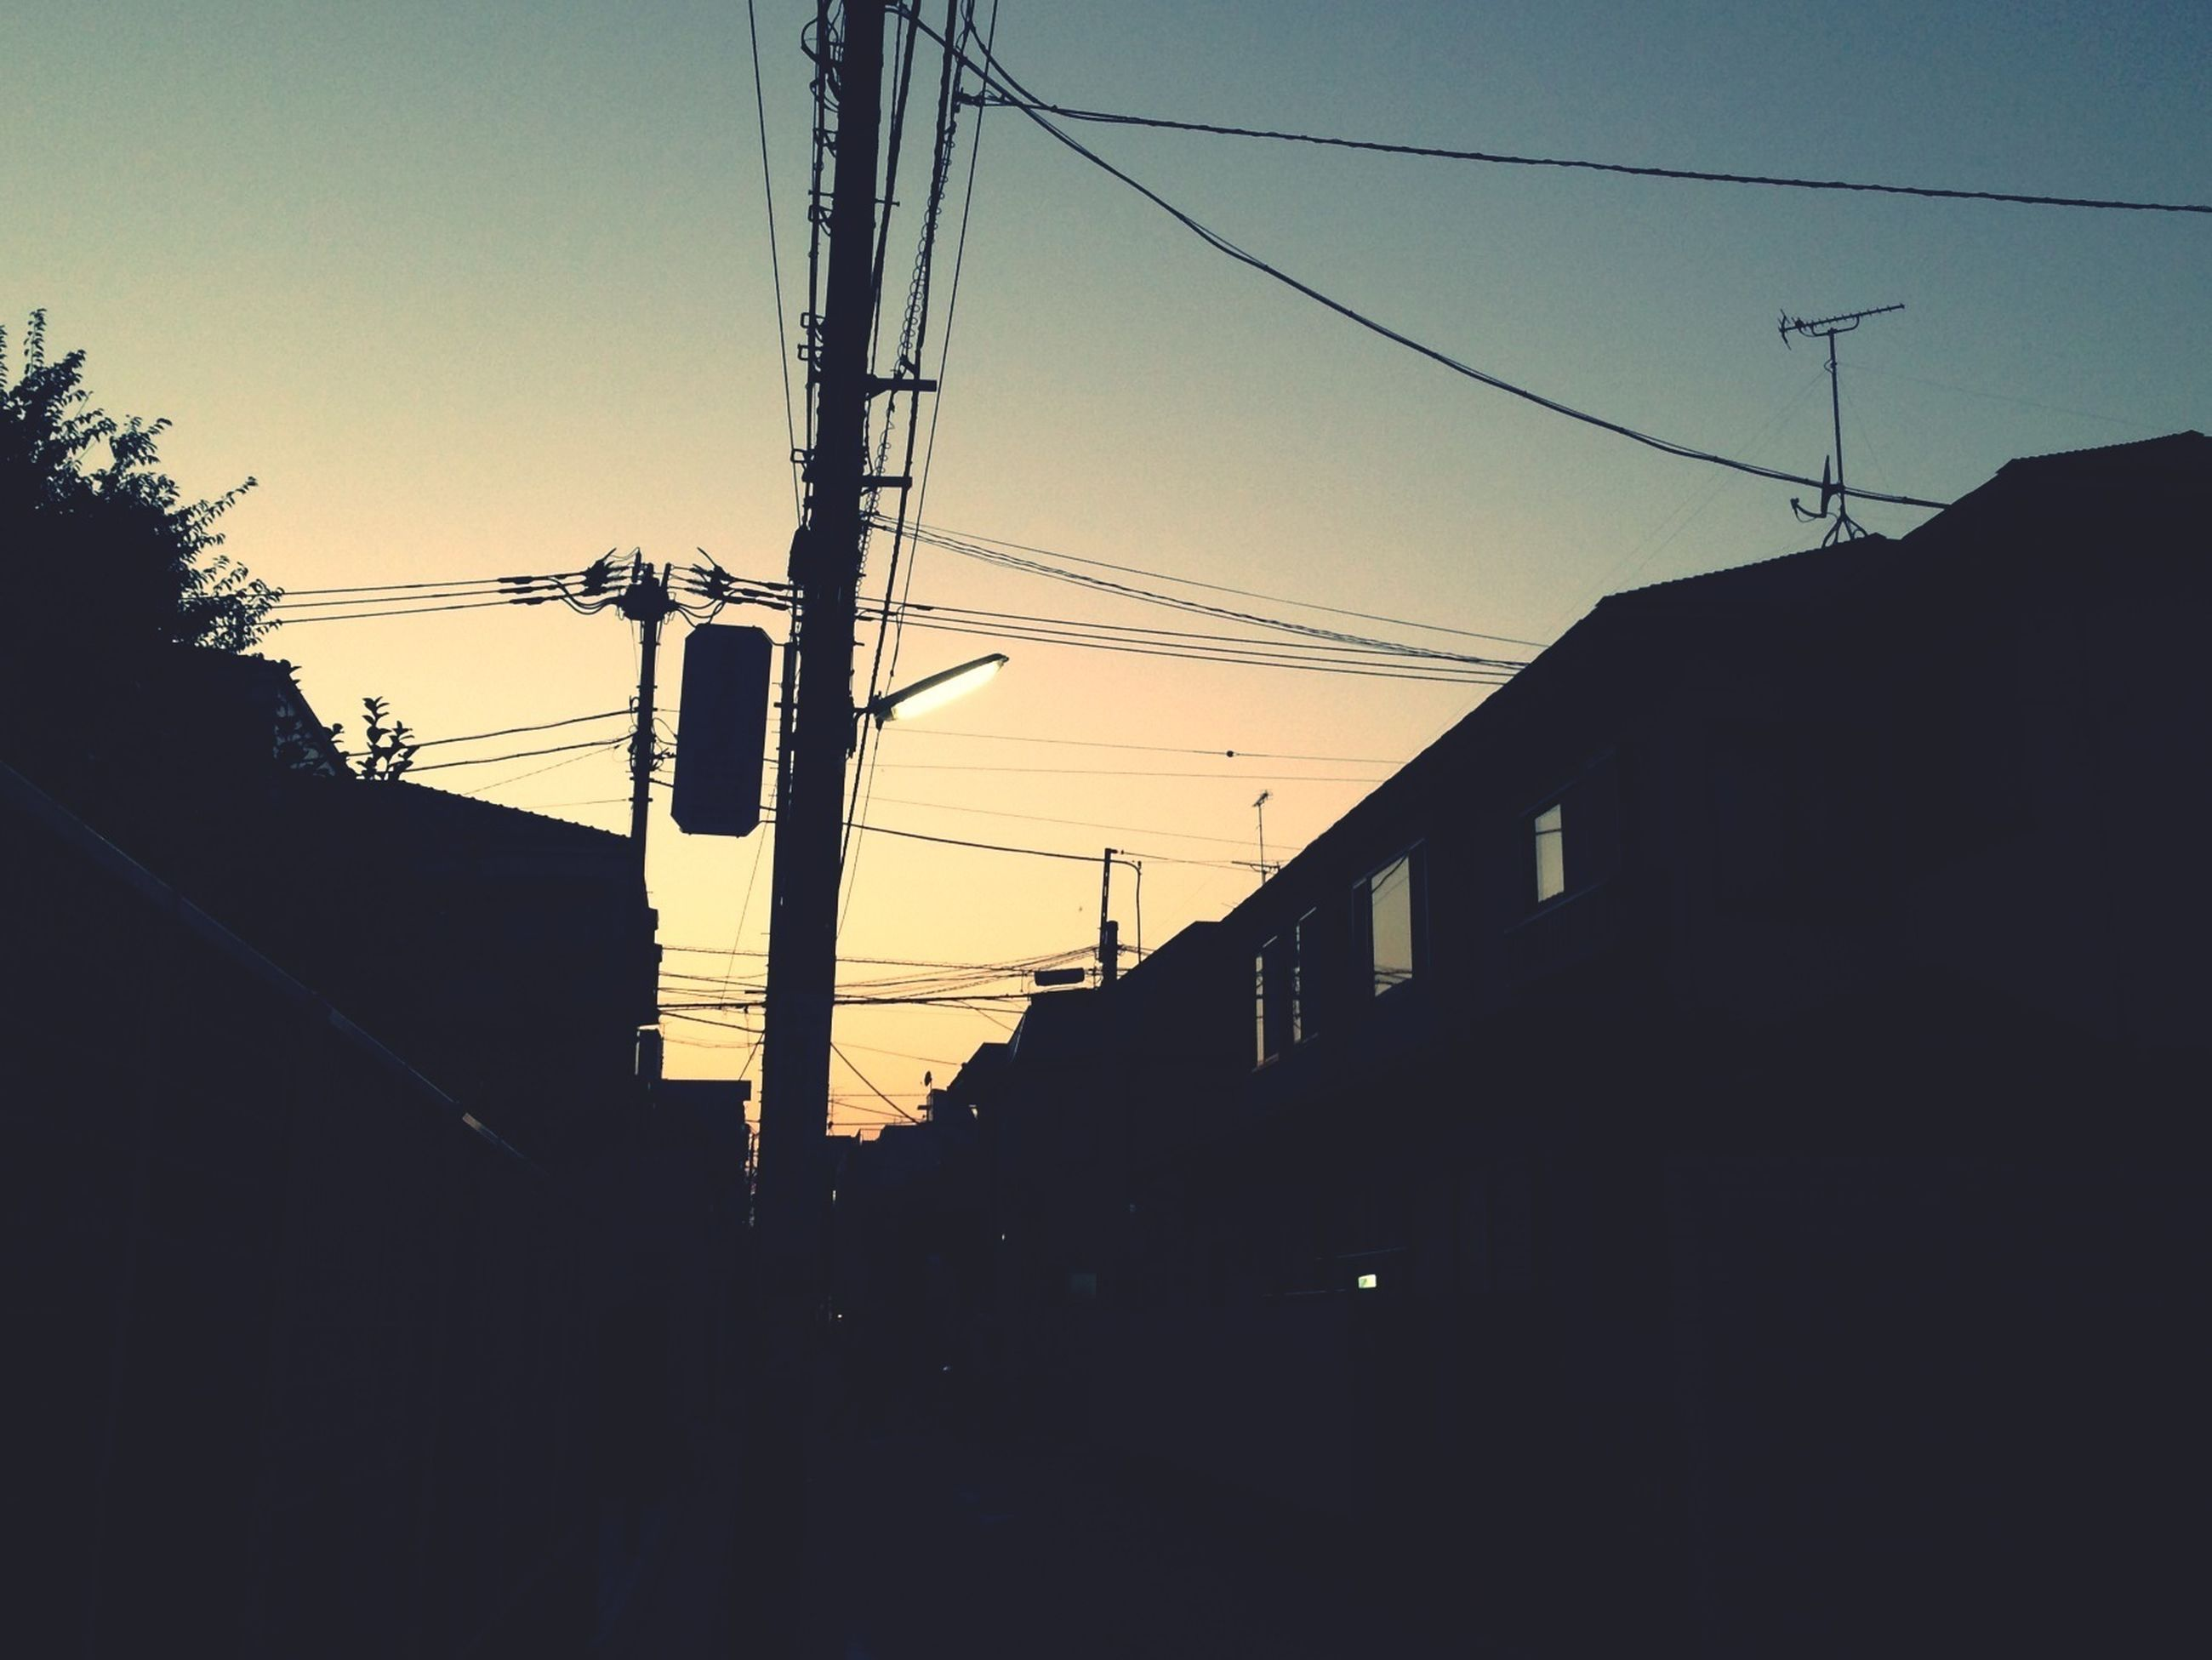 building exterior, power line, architecture, built structure, cable, electricity pylon, electricity, clear sky, low angle view, power supply, silhouette, house, sky, residential structure, residential building, fuel and power generation, sunset, connection, power cable, city